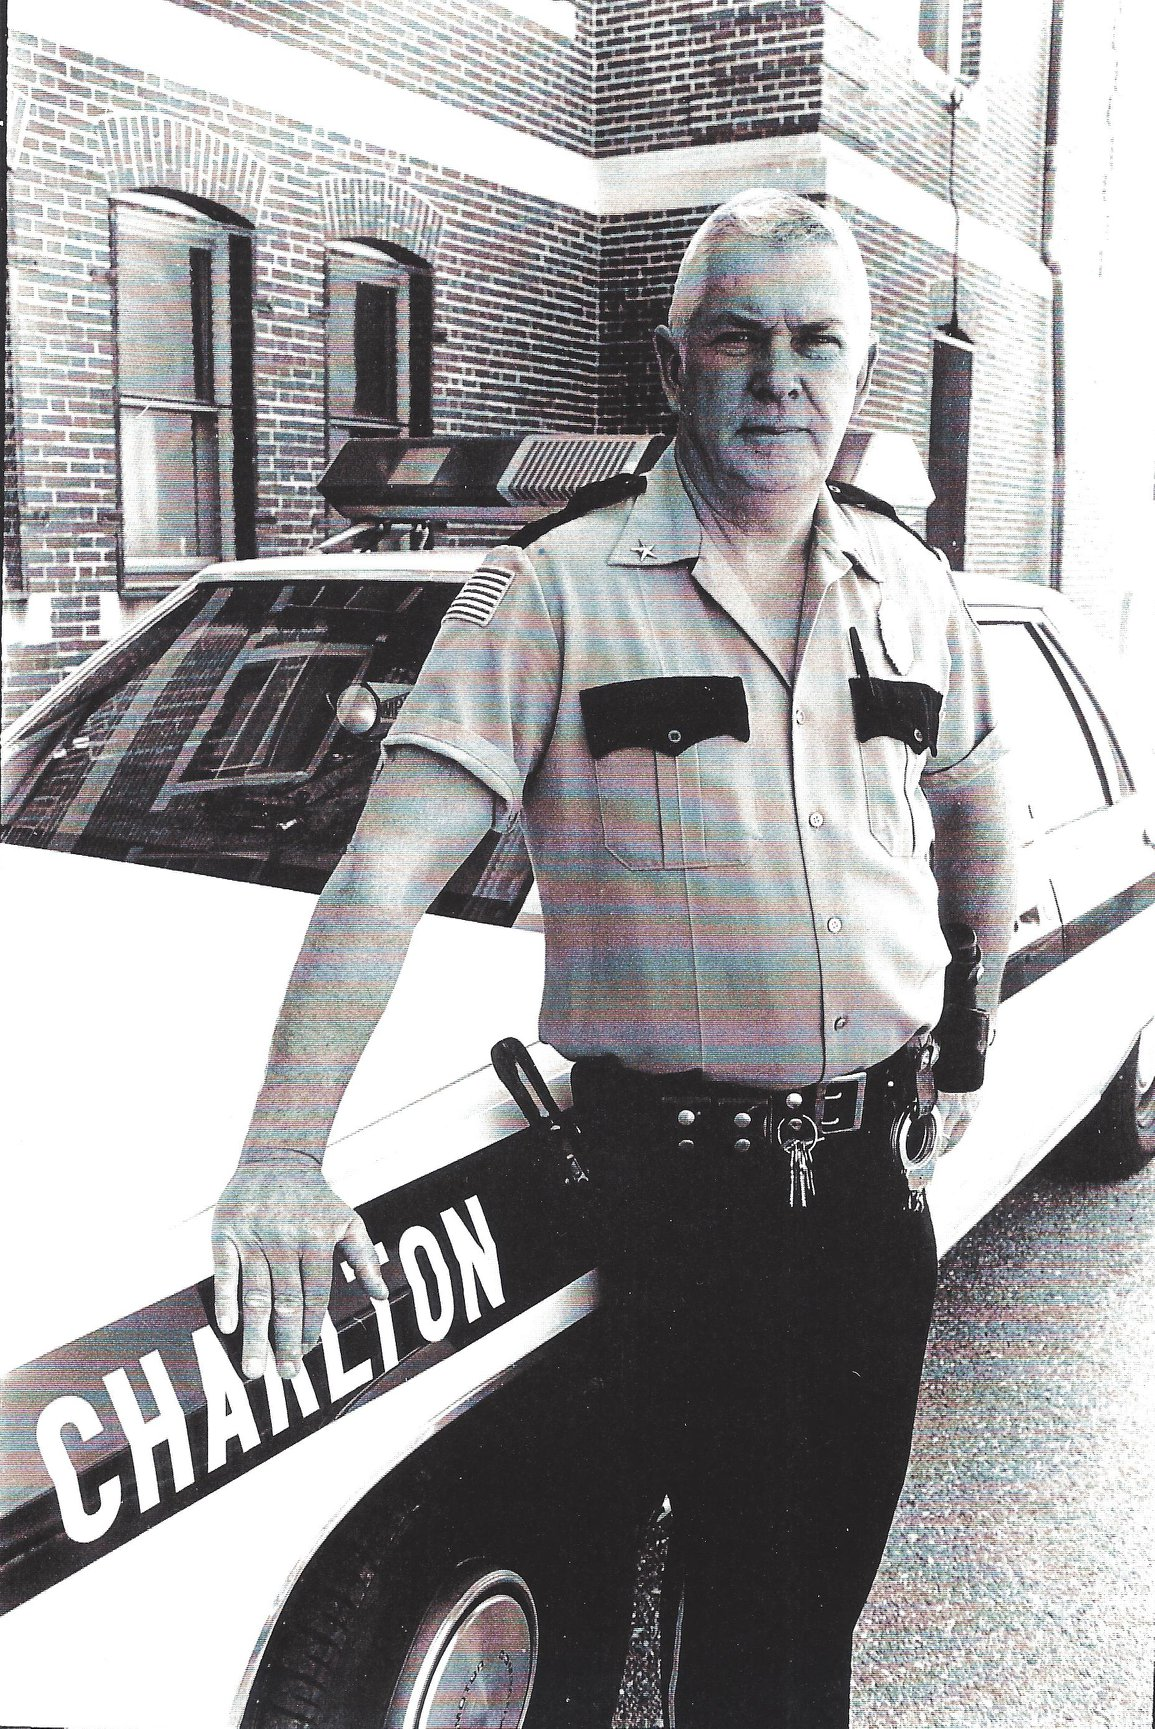 Former police chief mourned